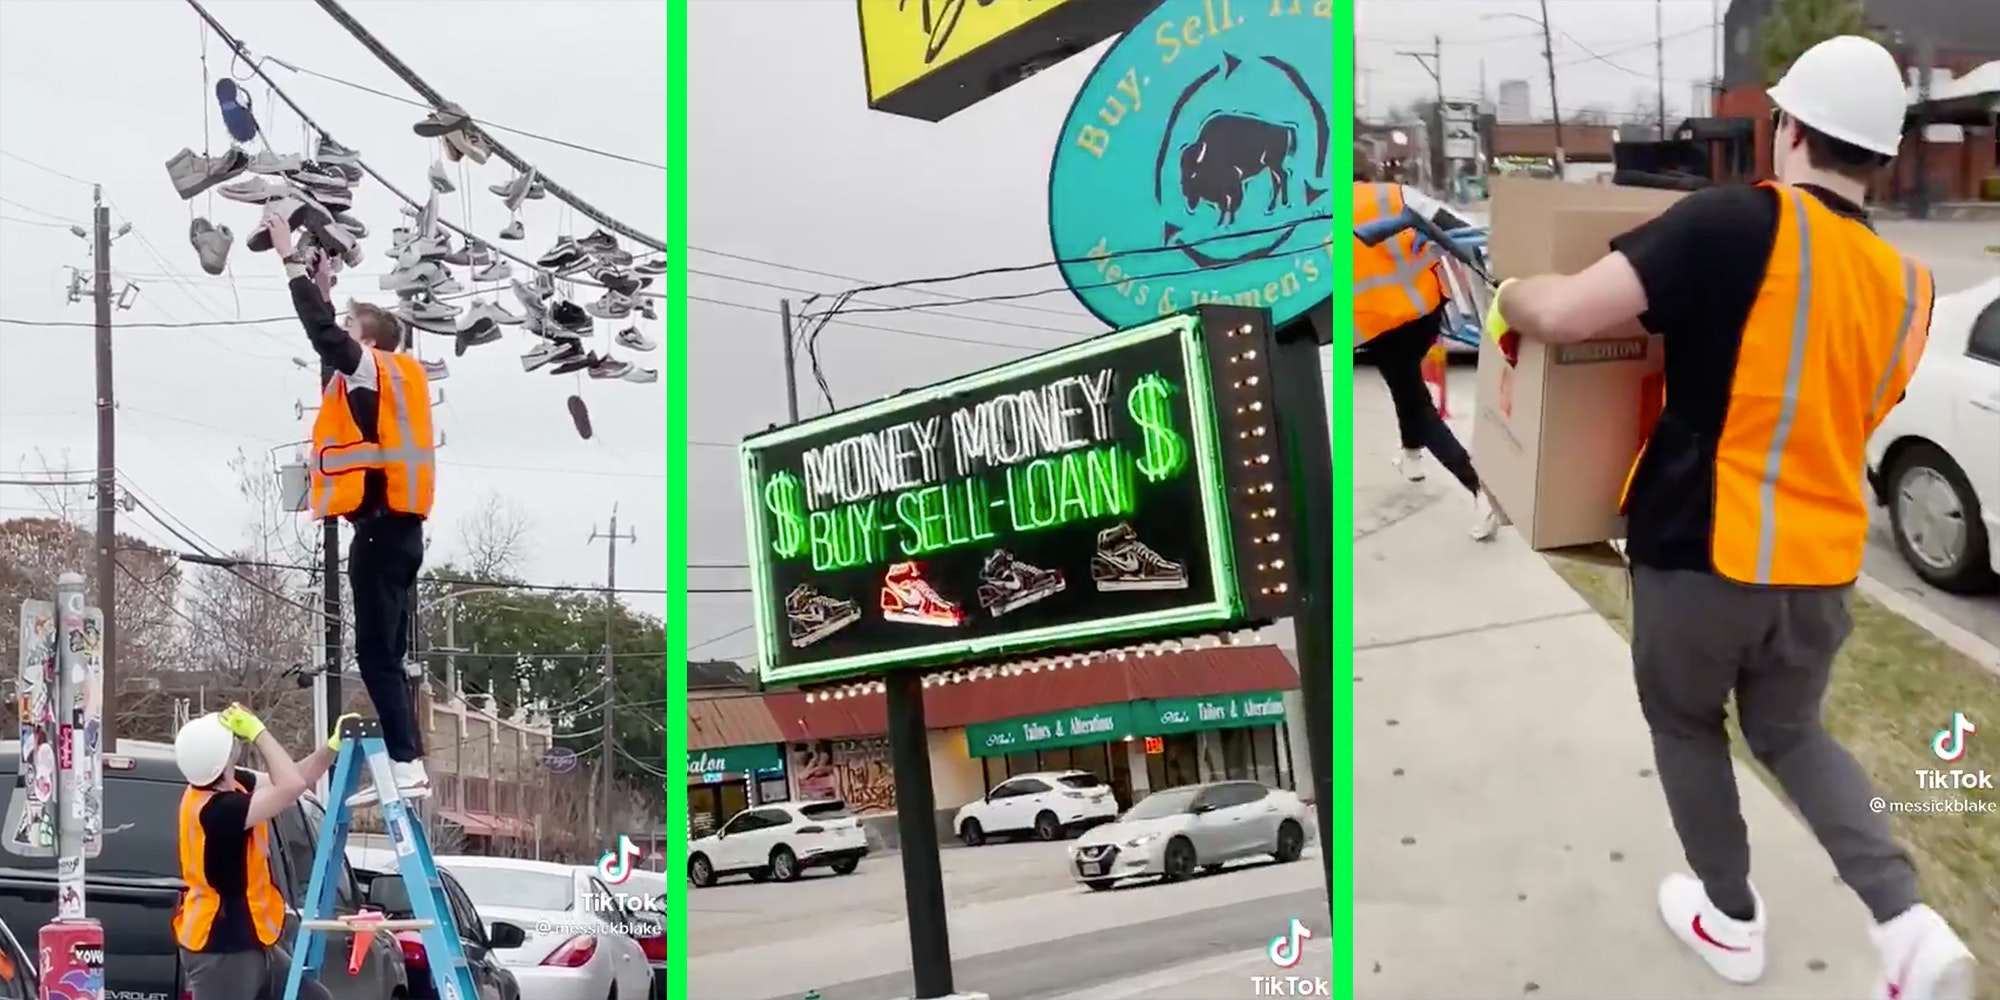 Kids taking shoes off power lines (l), a neon sign (c), and kids running with cardboard box(r).